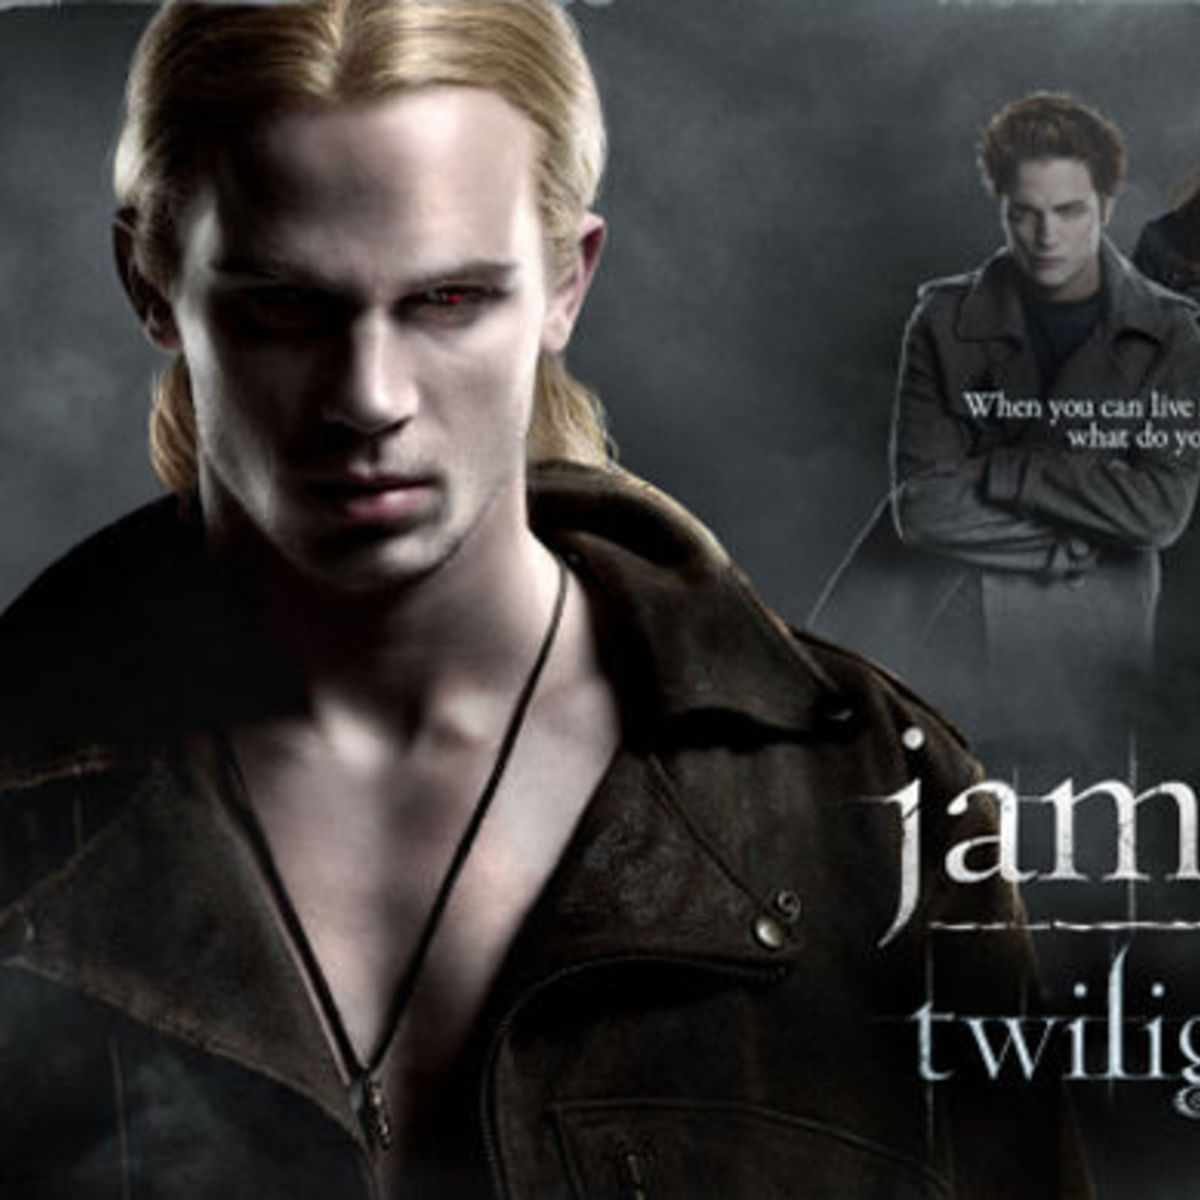 twilight_gigandet.jpg